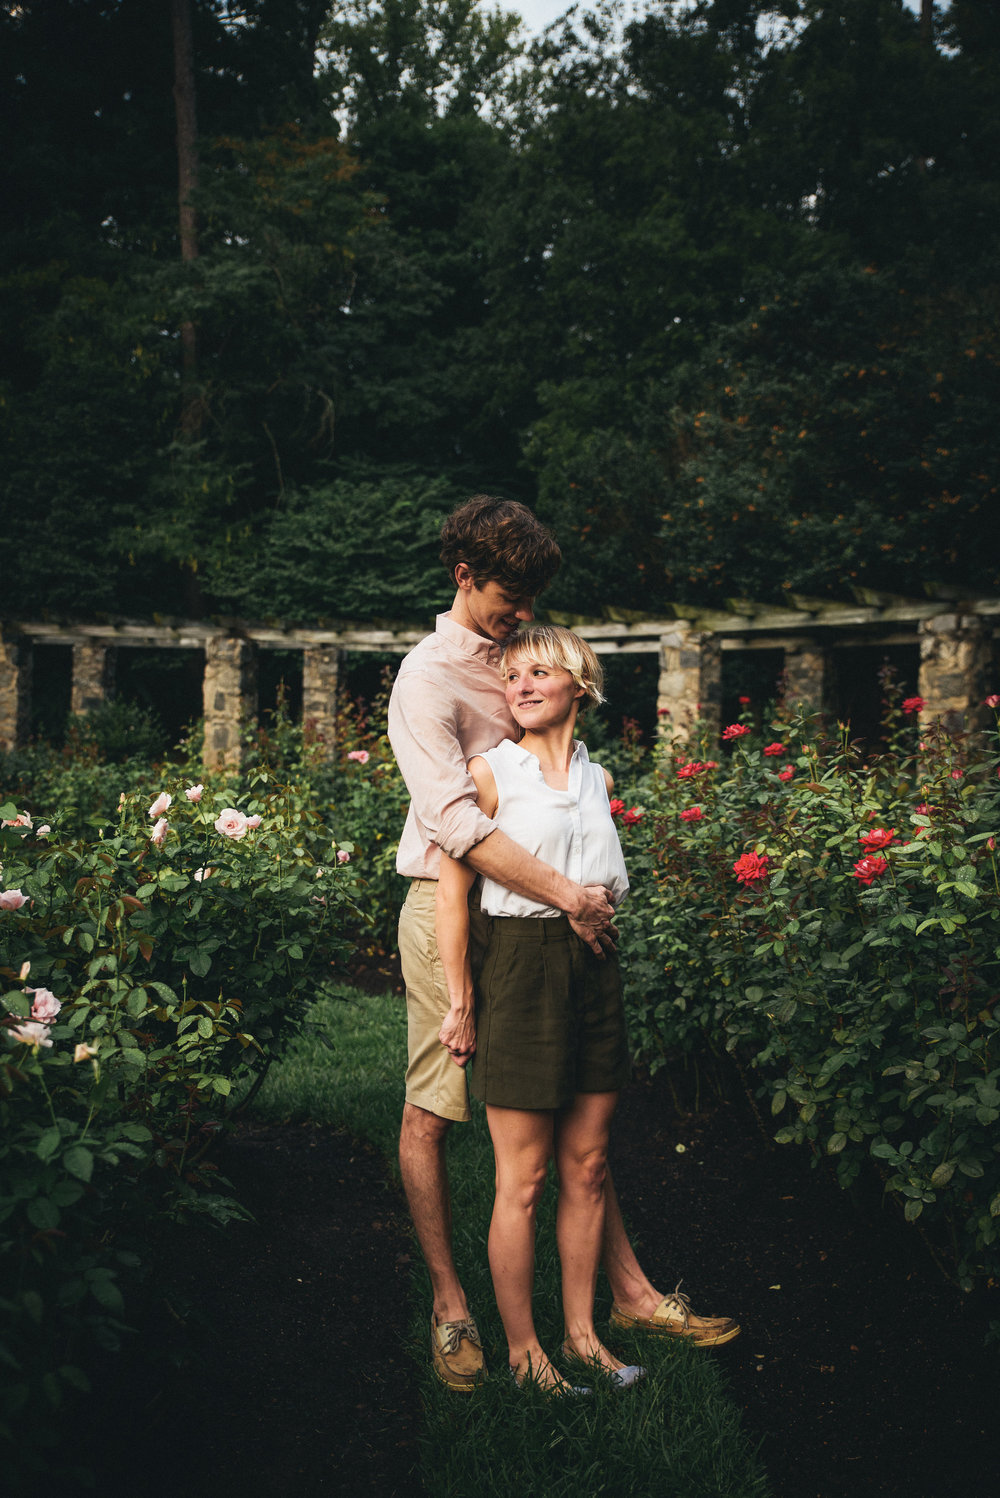 Rose Garden Engagement Session - Raleigh Engagement - North Carolina Wedding Photographer